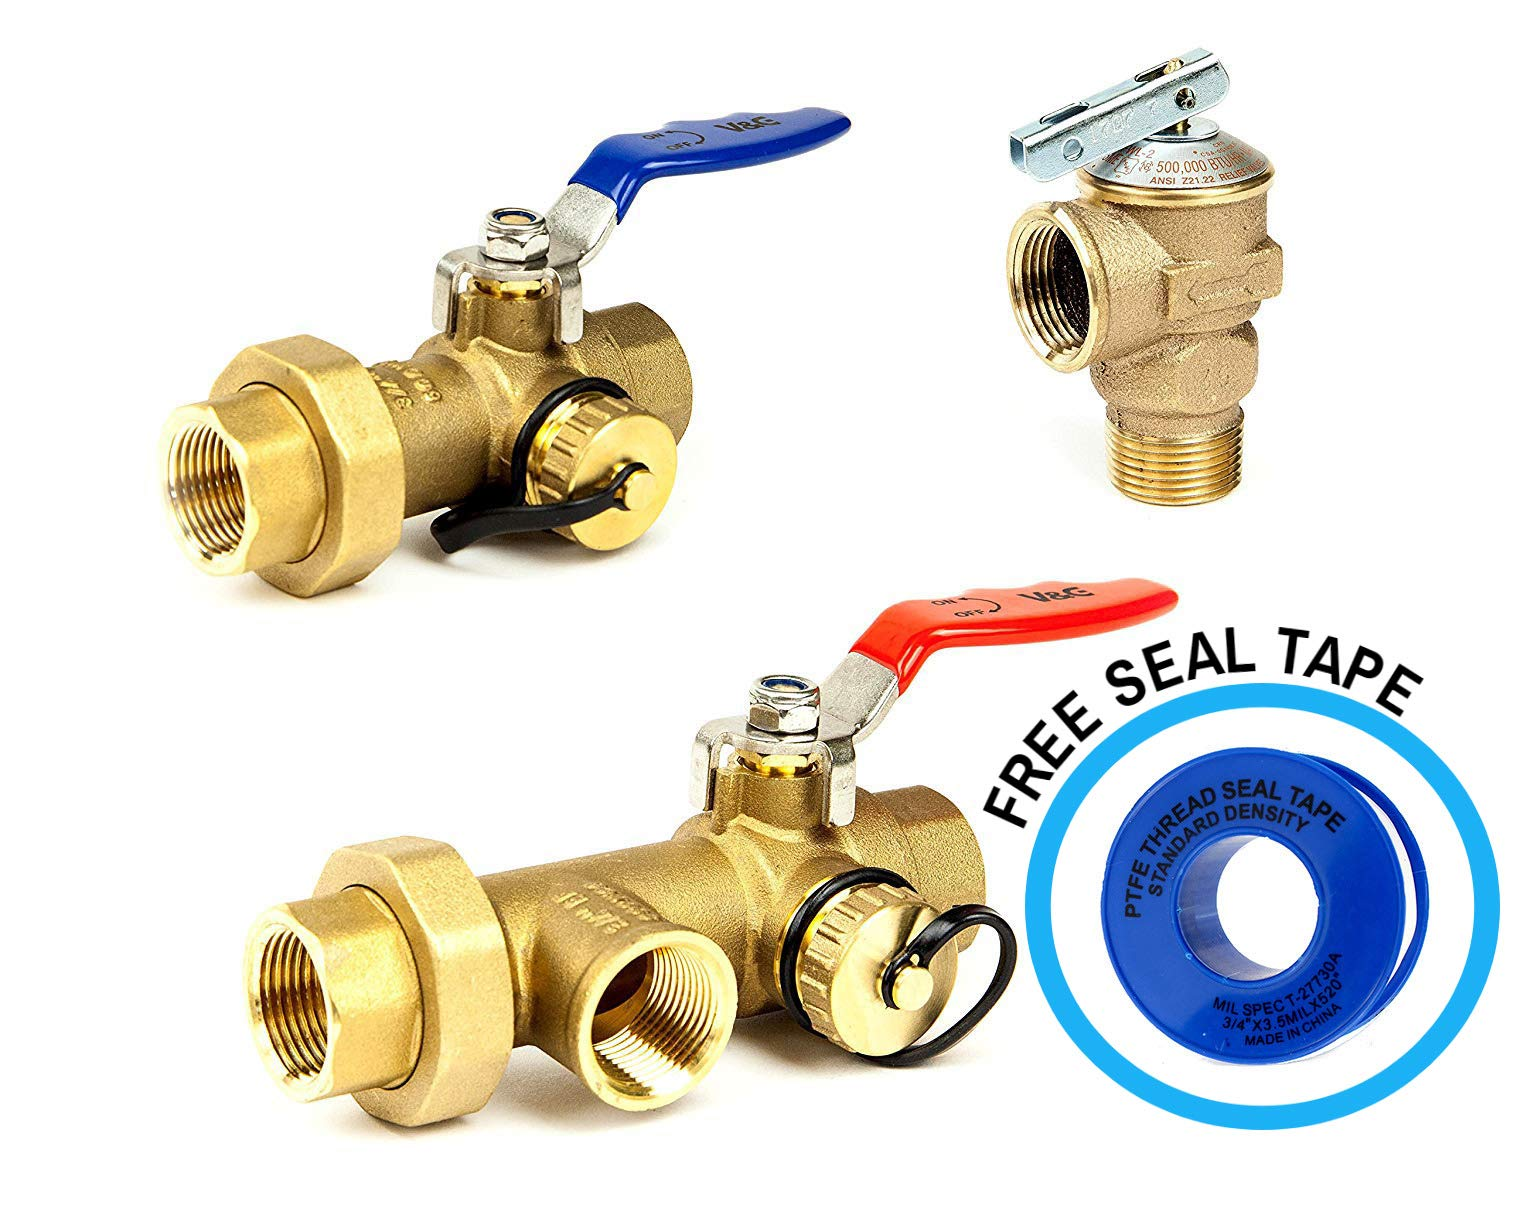 Tankless Water Heater Flush Kit 3/4'' Lead Free Isolation Service Valves 3/4-Inch Temperature Pressure Relief Valve for Hot Water Heaters Single Handle Full Port IPS Isolator Brass NSF-61 by V & G